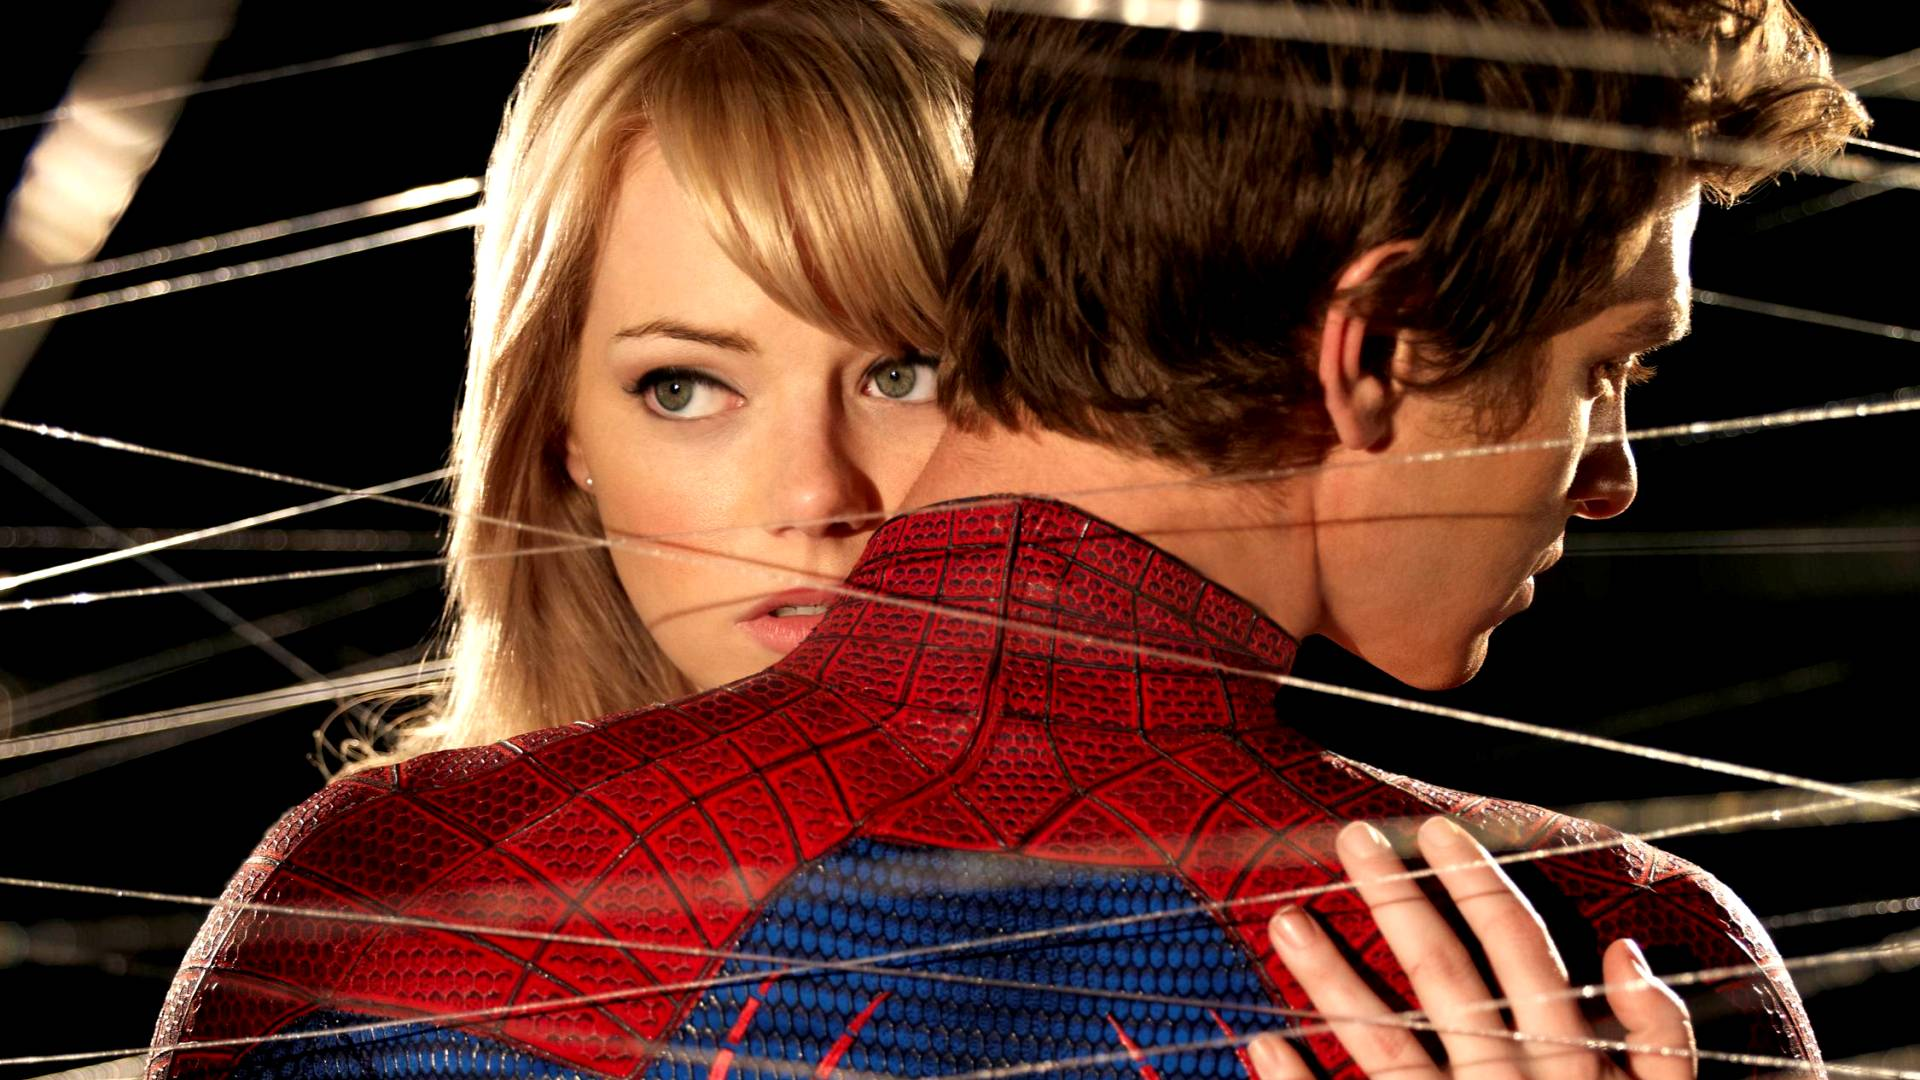 The Amazing Spider Man2012 Images Peter Gwen HD Wallpaper And Background Photos